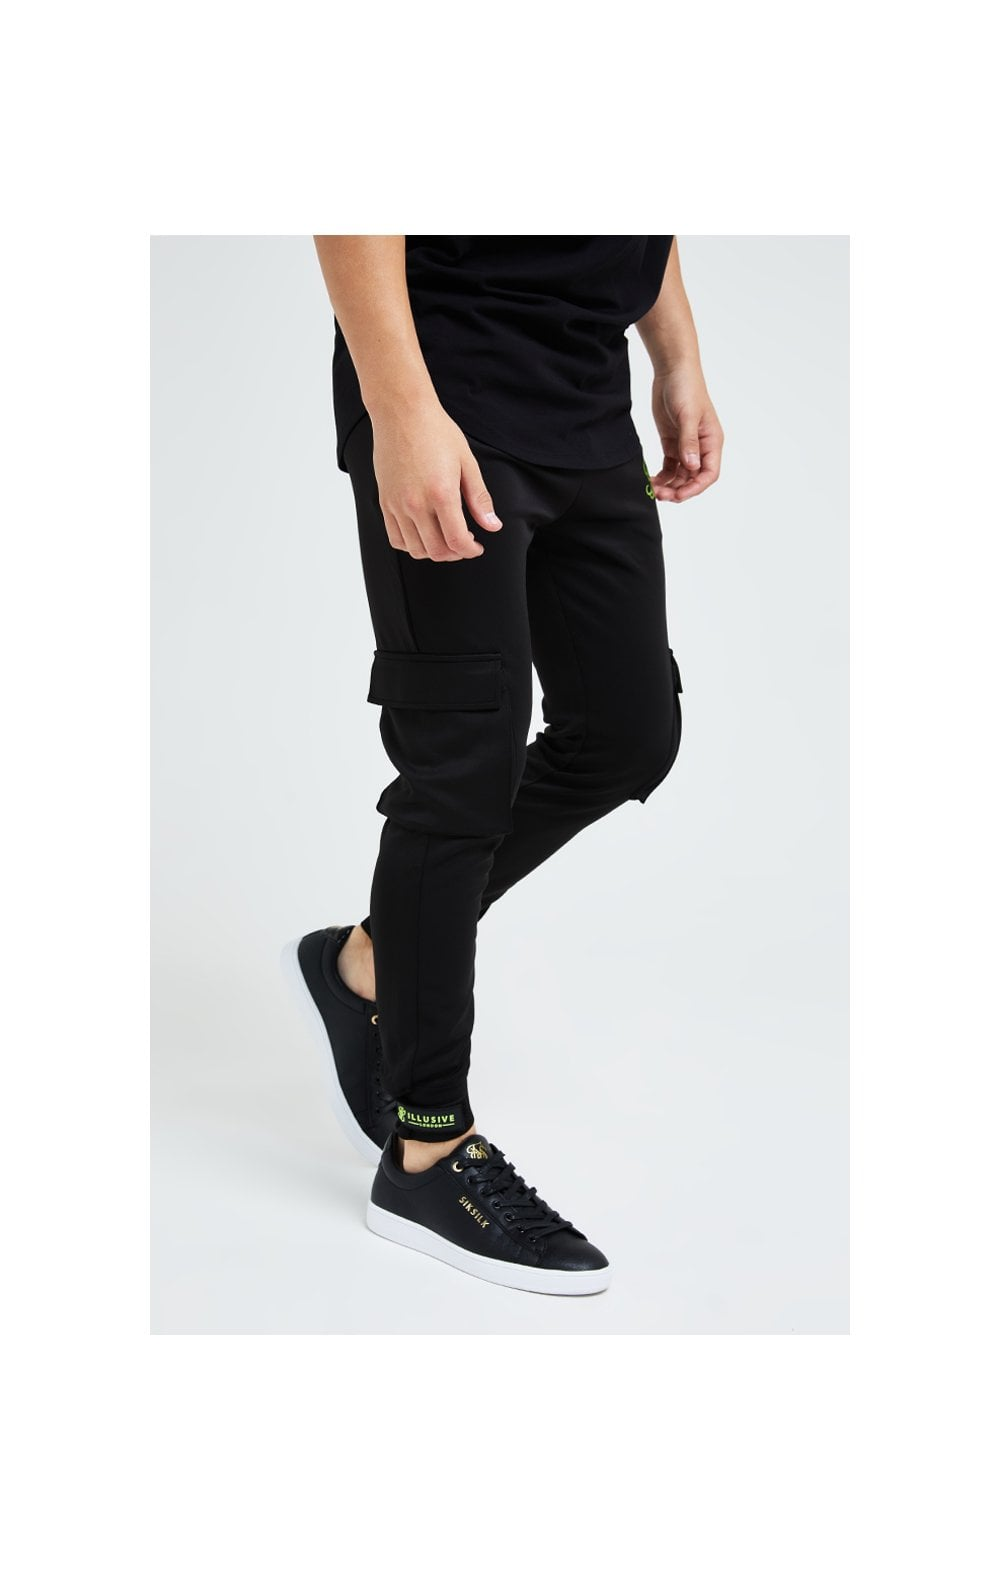 Illusive London Element Cargo Joggers - Black & Green (3)